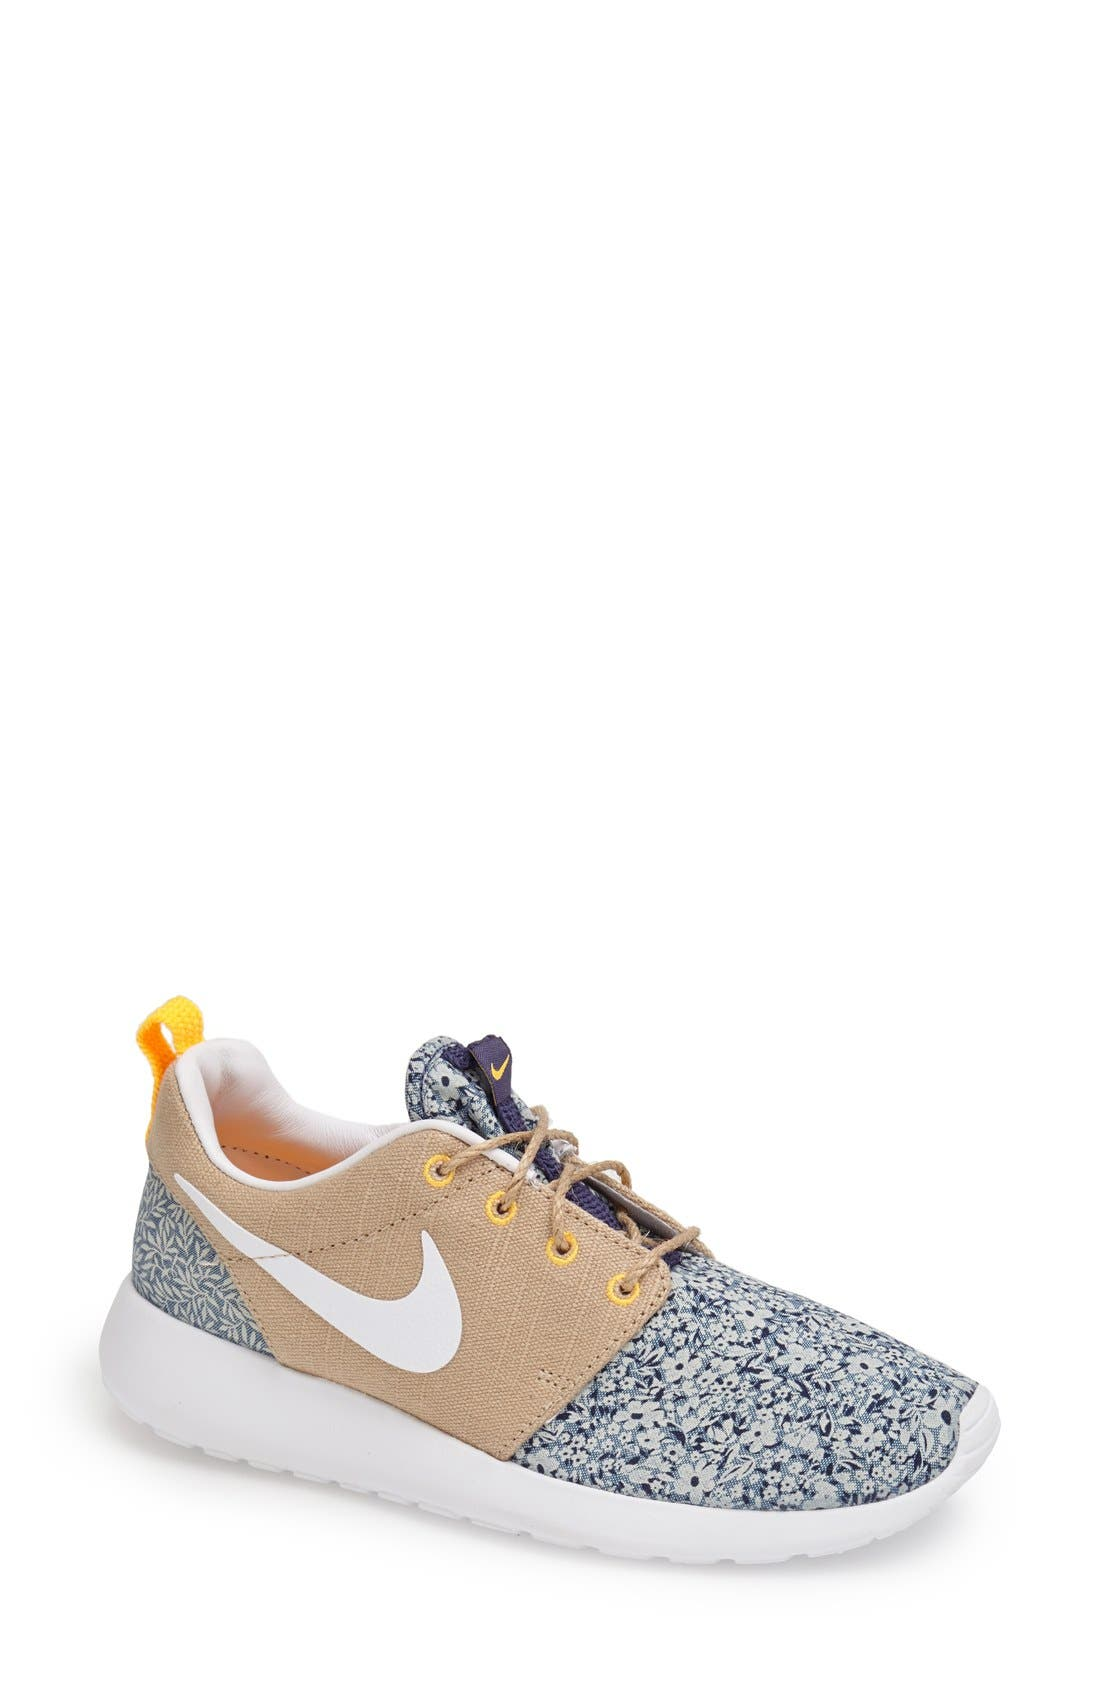 Main Image - Nike 'Roshe Run - Liberty' Sneaker (Women)